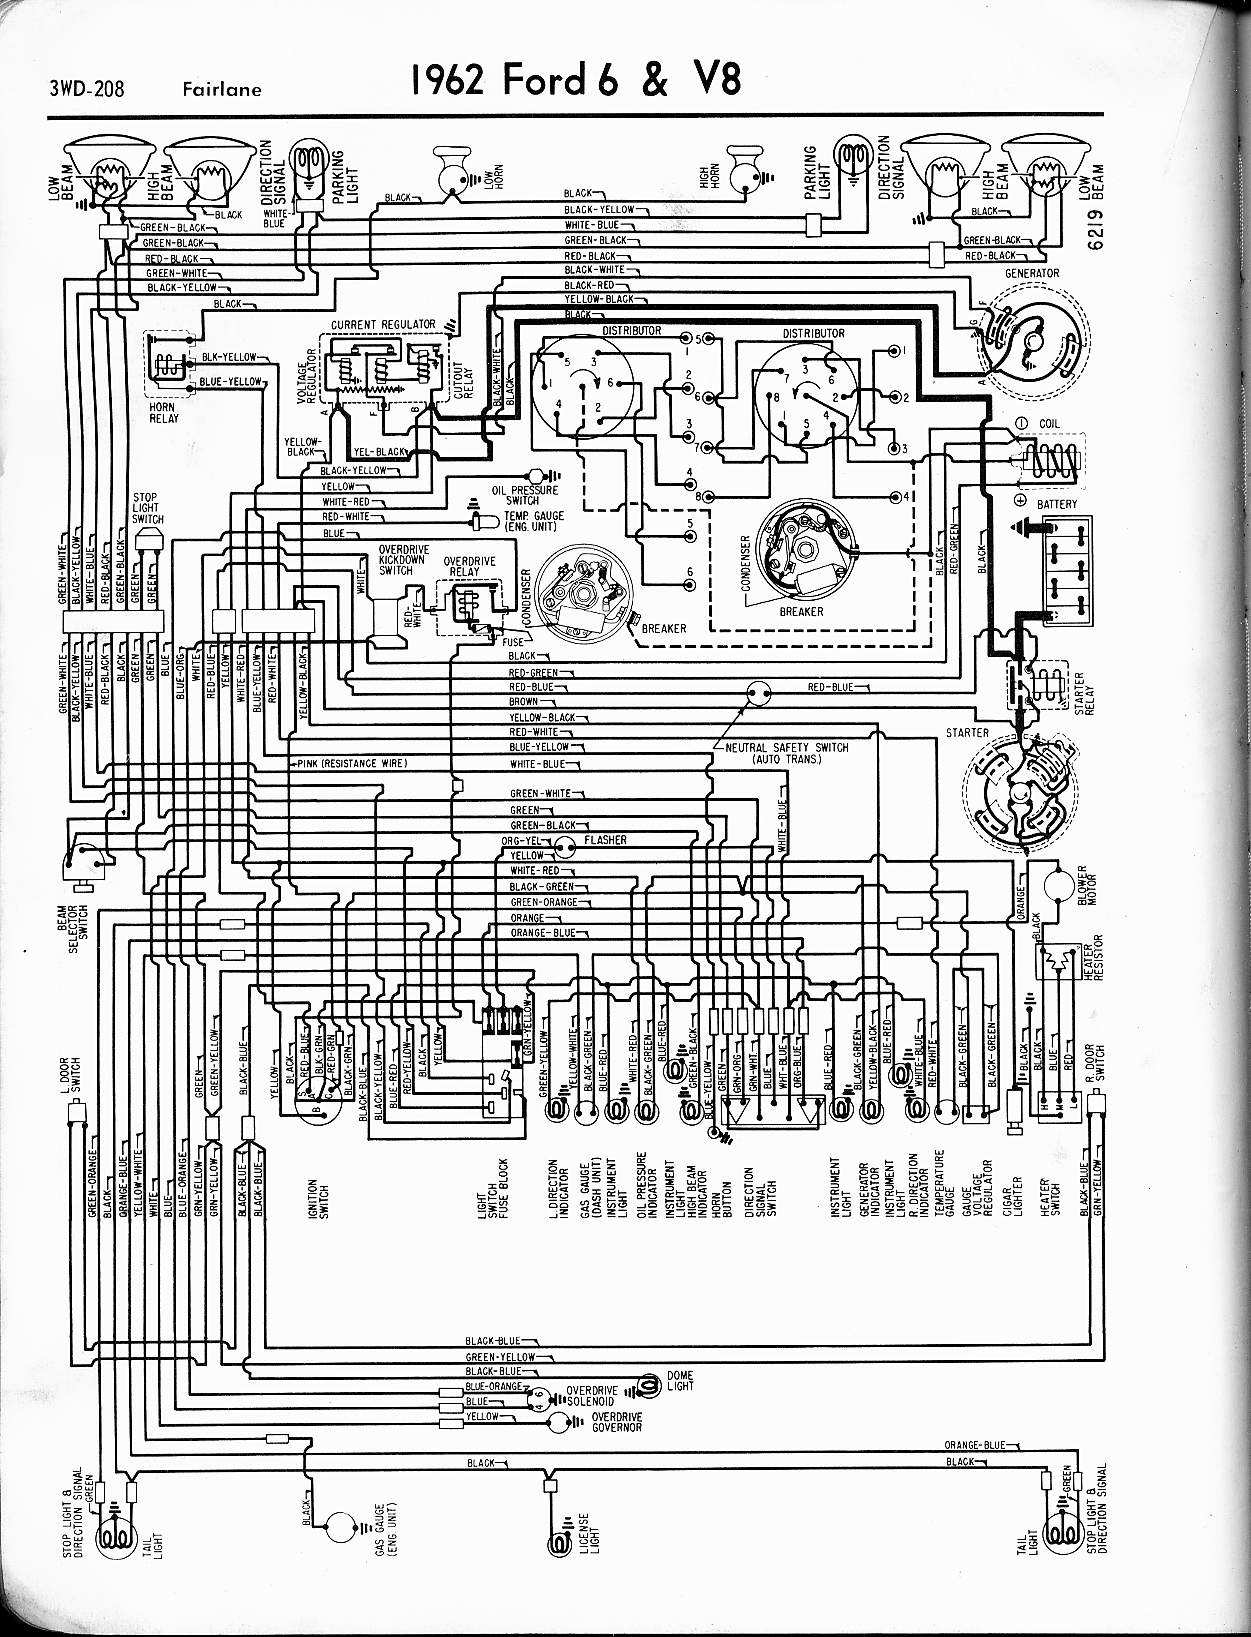 1964 Cadillac Deville Wiring Diagrams Great Design Of Diagram 2002 Seville 1962 Ford Falcon Engine Get Free Image About 1968 Coupe